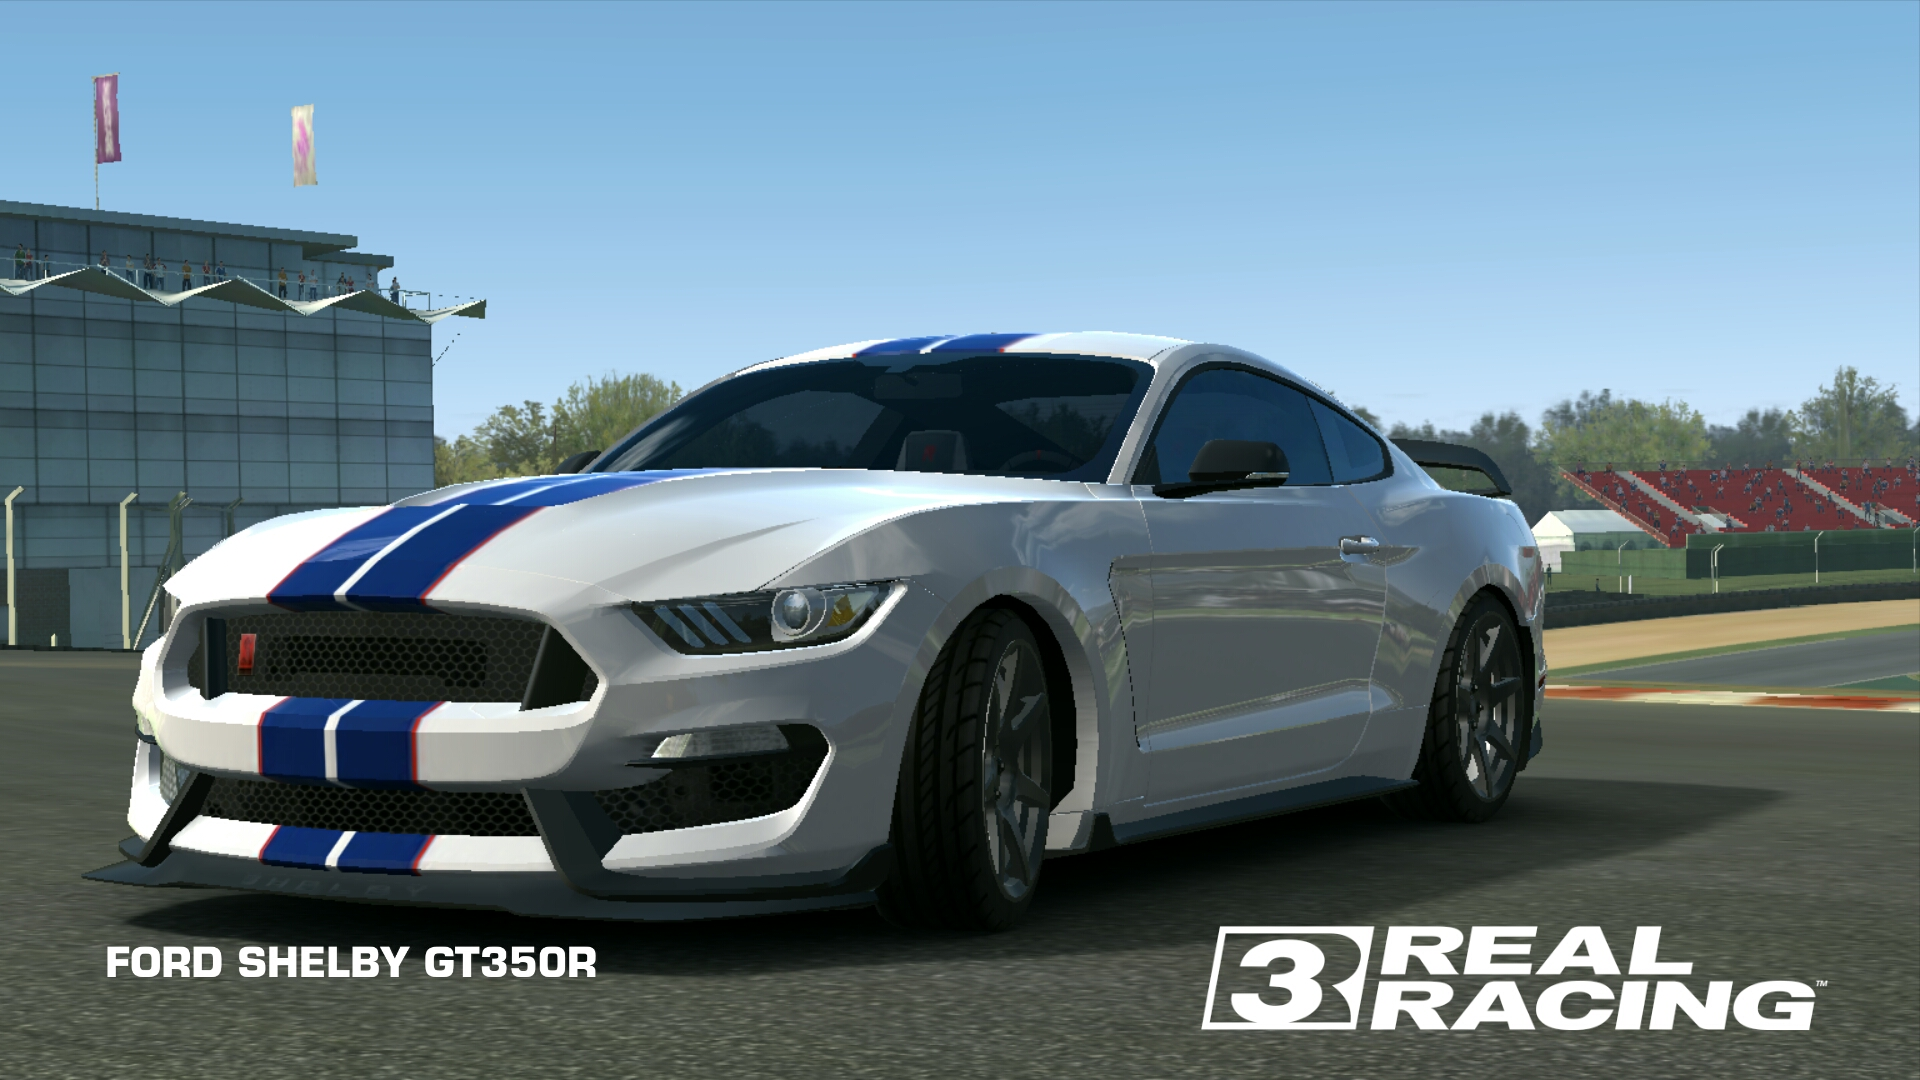 FORD SHELBY GT350R | Real Racing 3 Wiki | FANDOM powered by Wikia